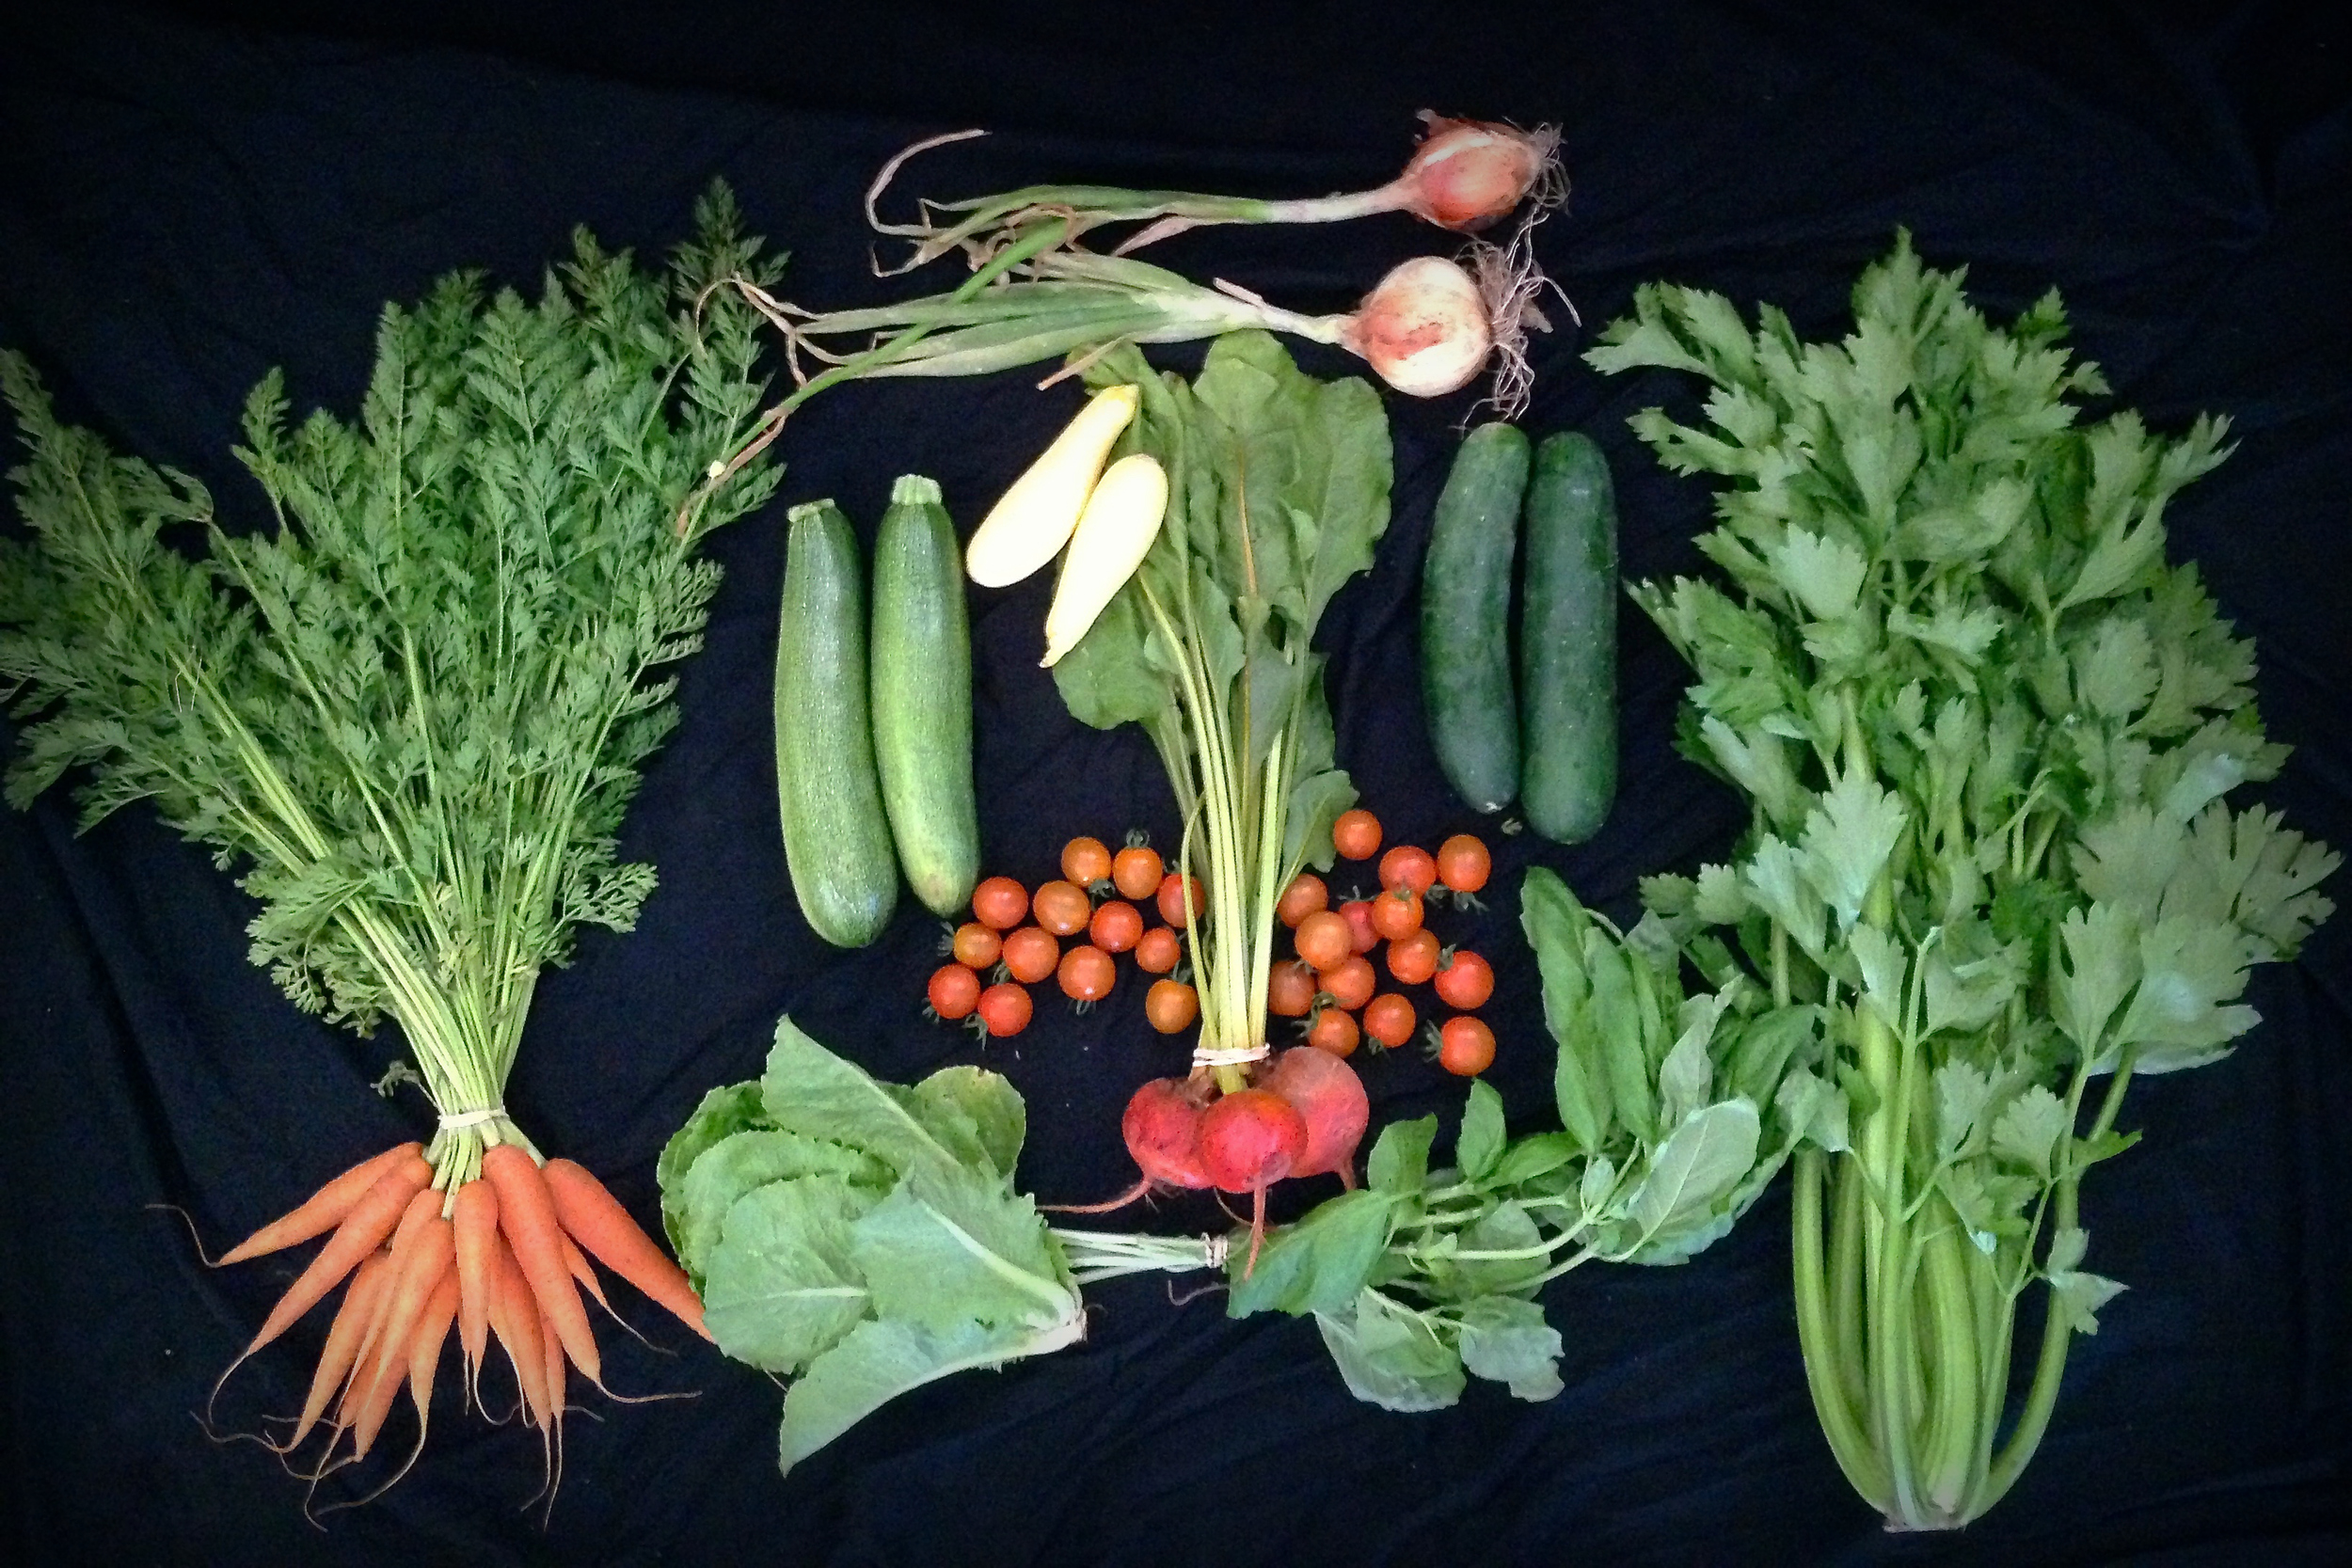 Spring/summer CSA, Week 7: carrots, cucumbers, beets, cherry tomatoes, zucchini, summer squash, celery, basil, Buttercrunch lettuce, broccoli (not pictured)